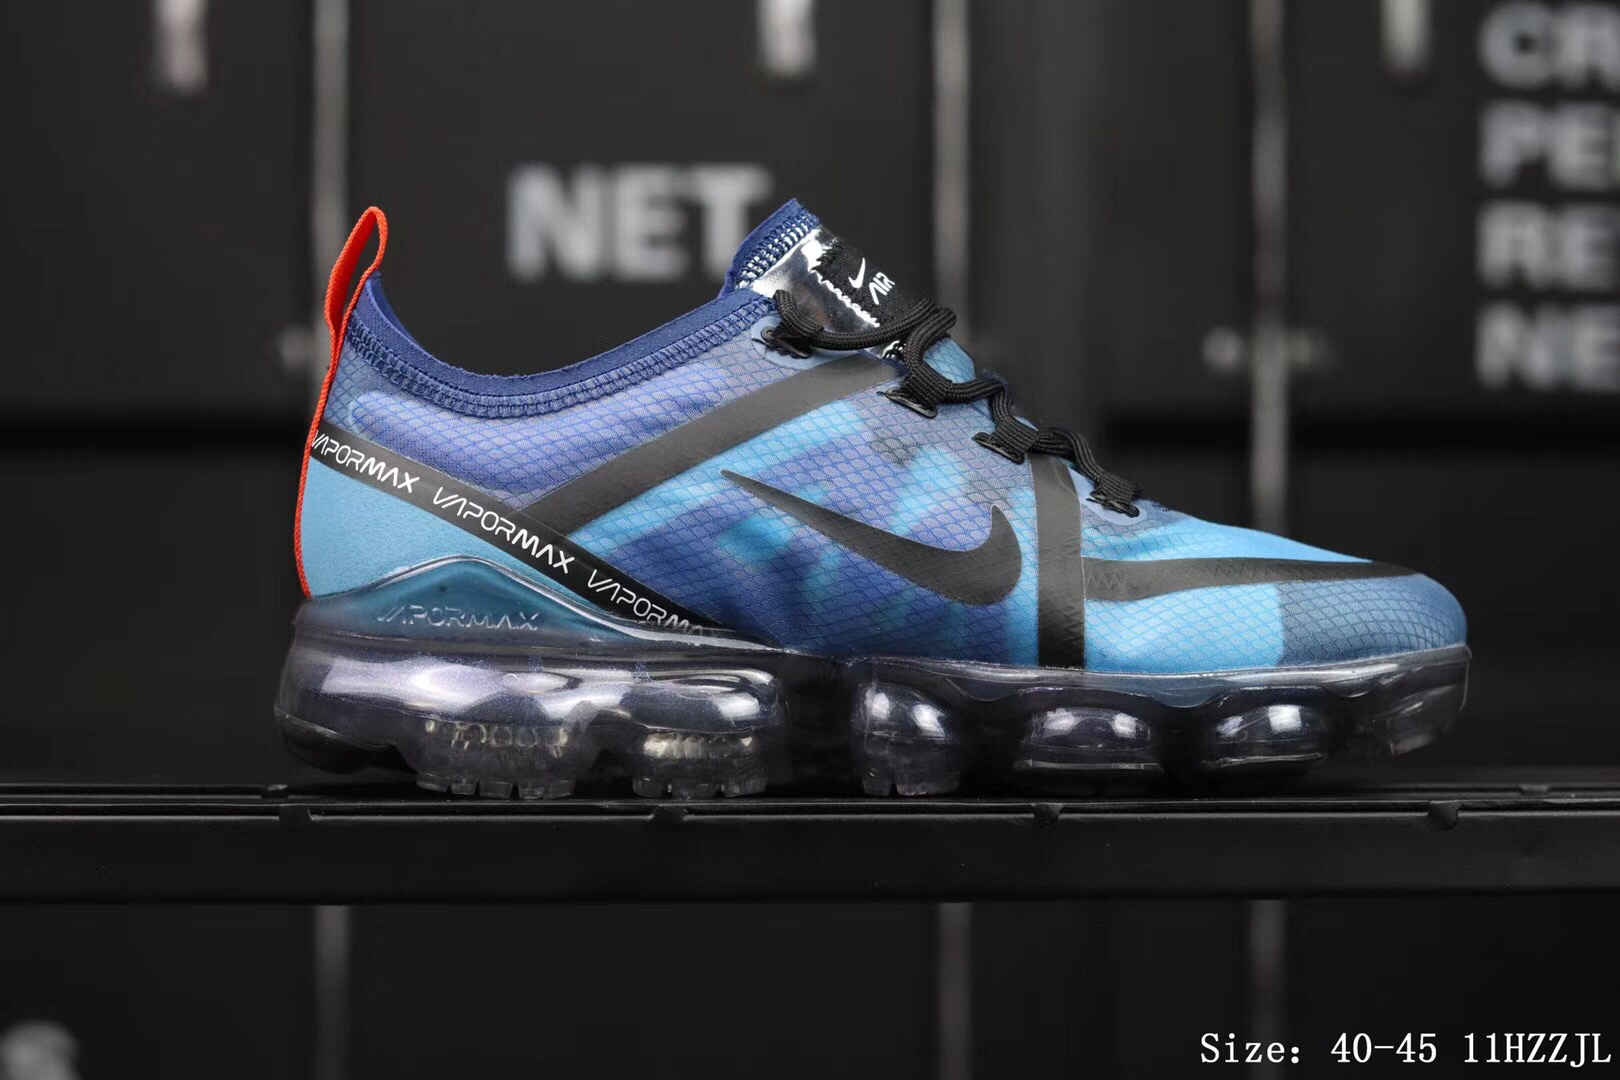 Nike Air Vapormax 2019 Mesh Blue Black Shoes For Women